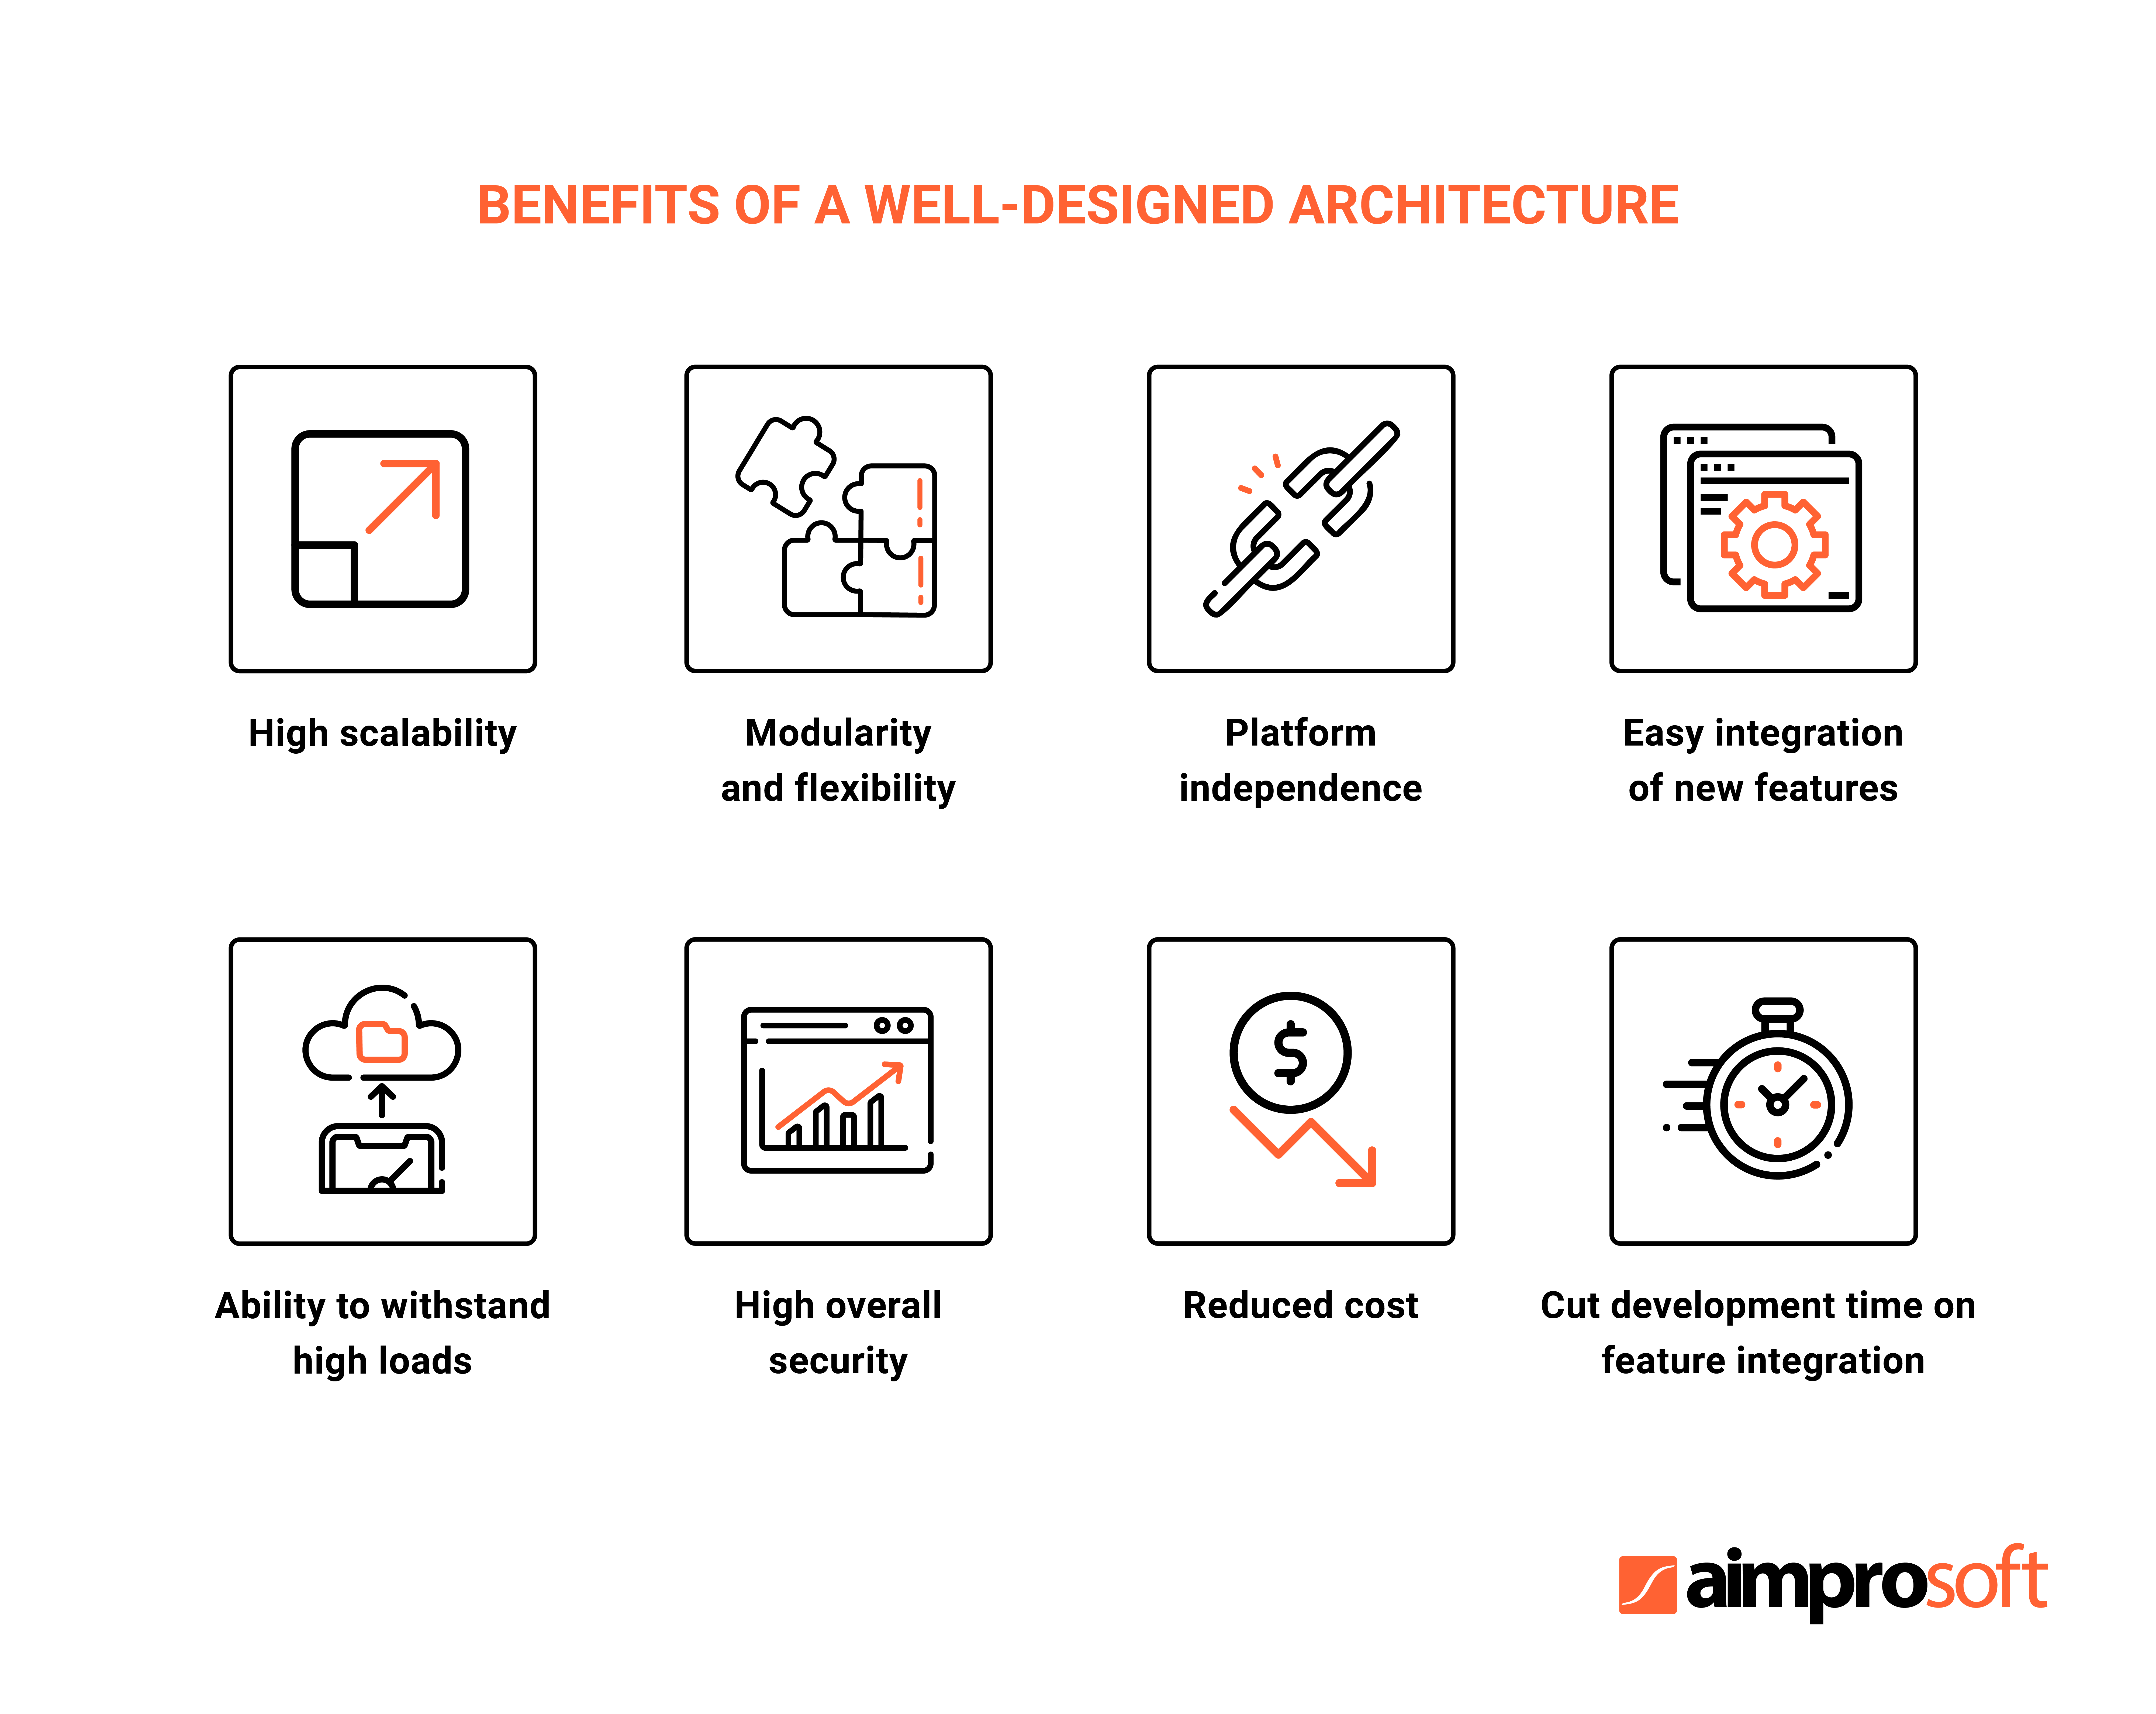 Benefits of an Internet of Things app architecture